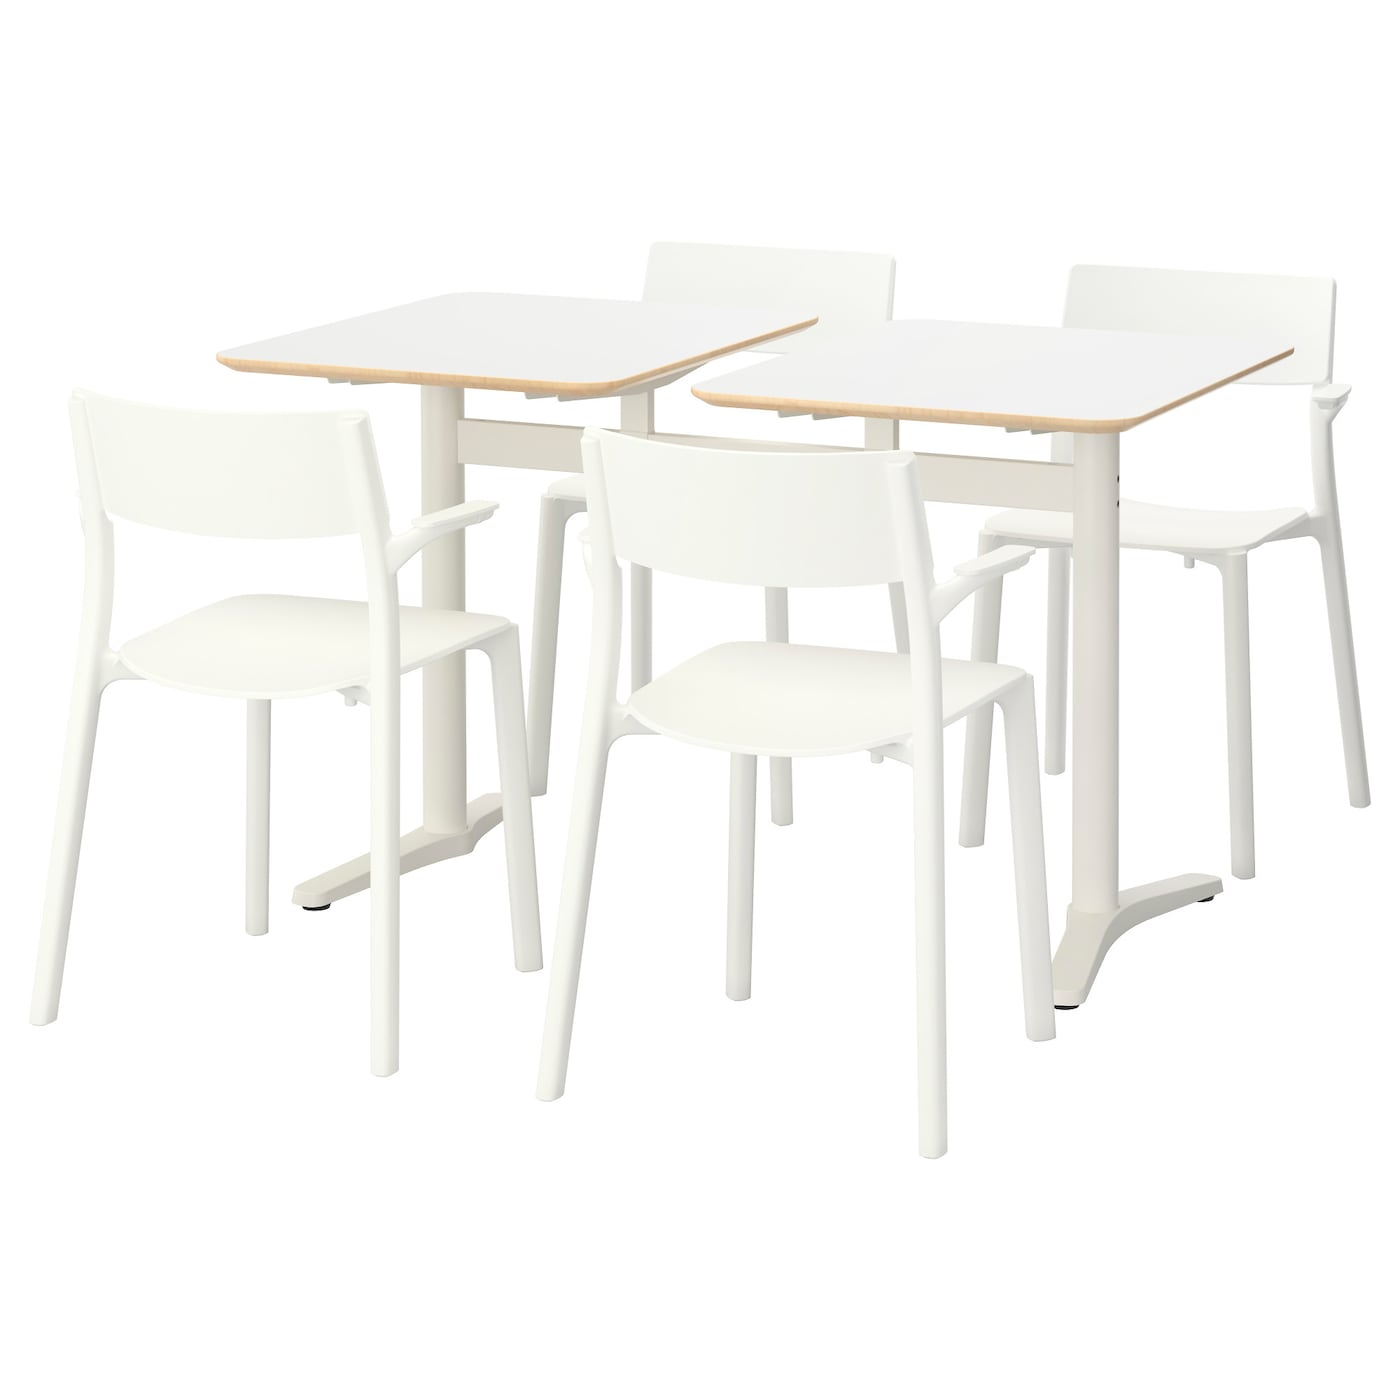 IKEA BILLSTA/JANINGE table and 4 chairs